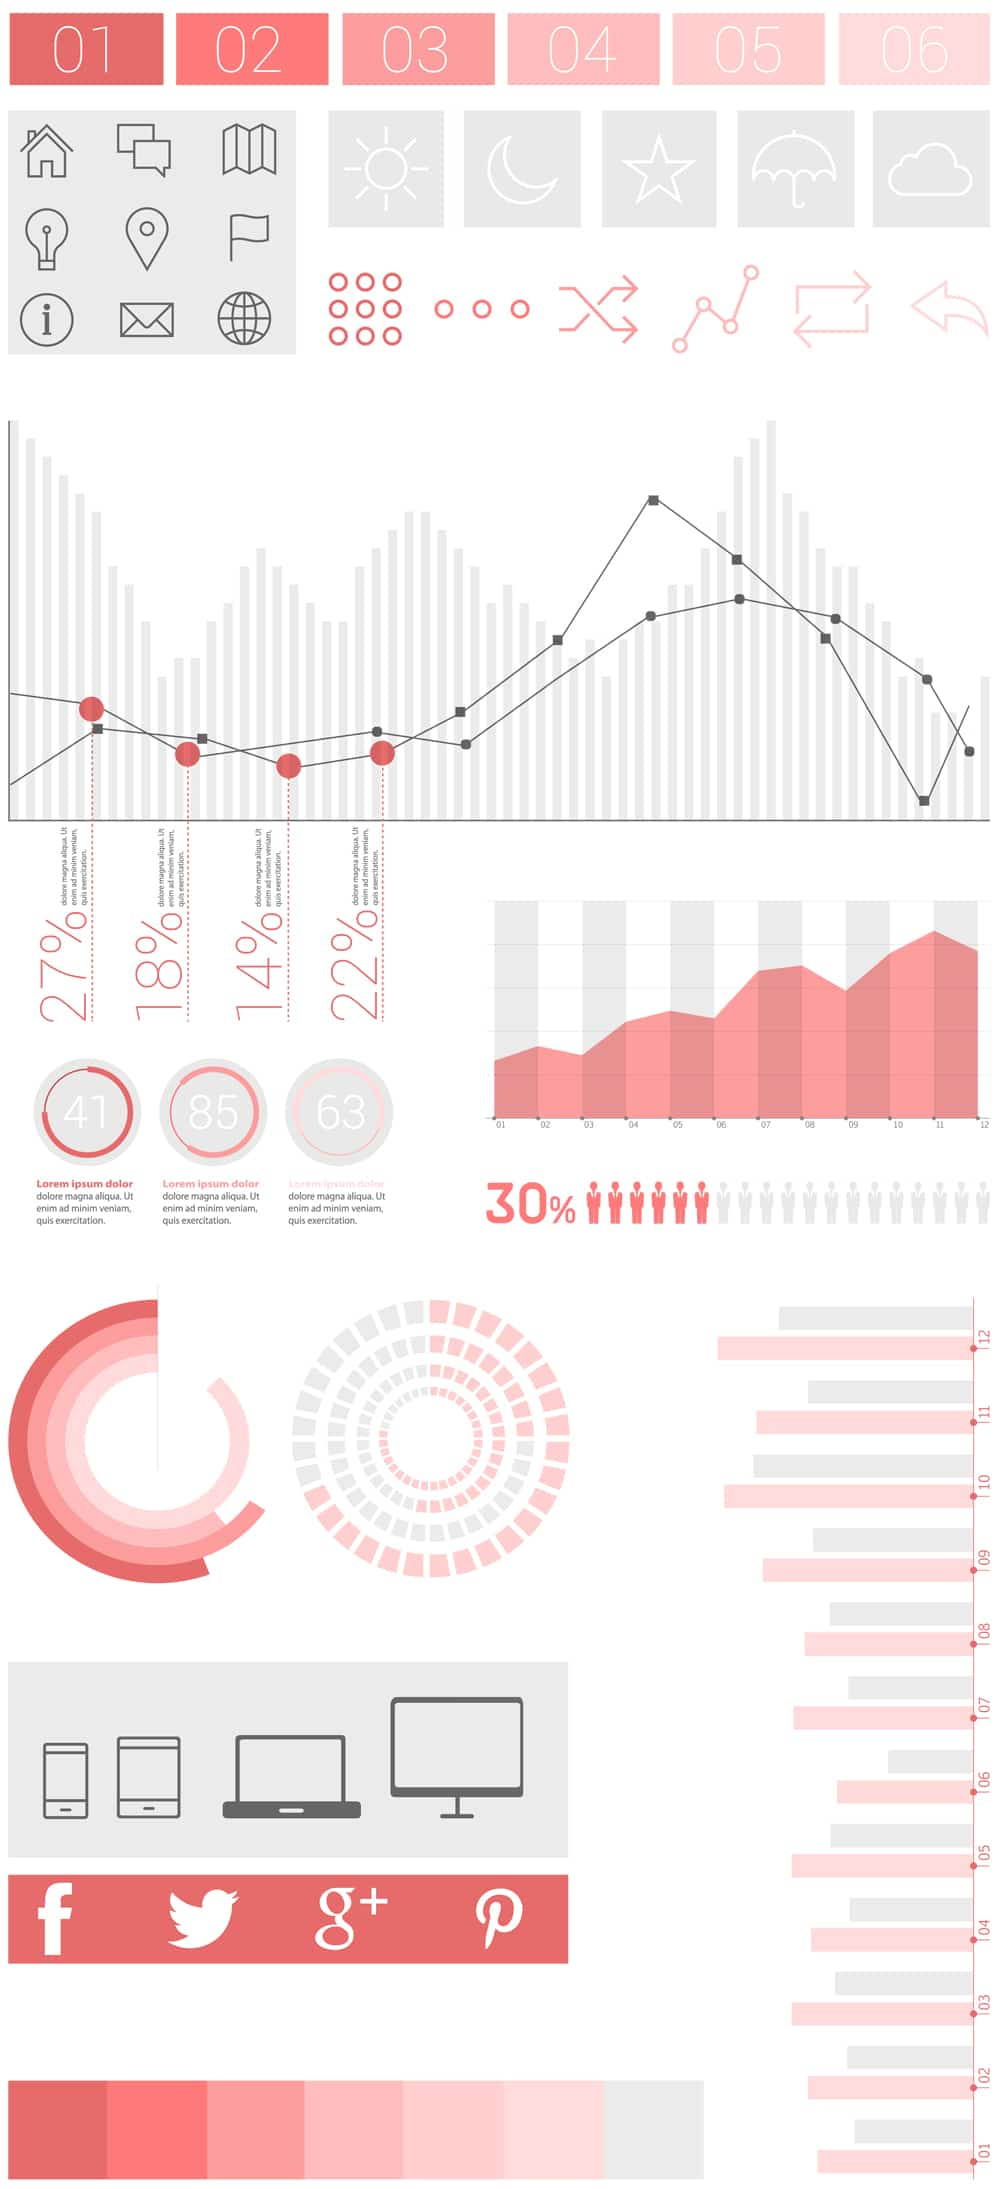 Flat UI Design Infographic Elements